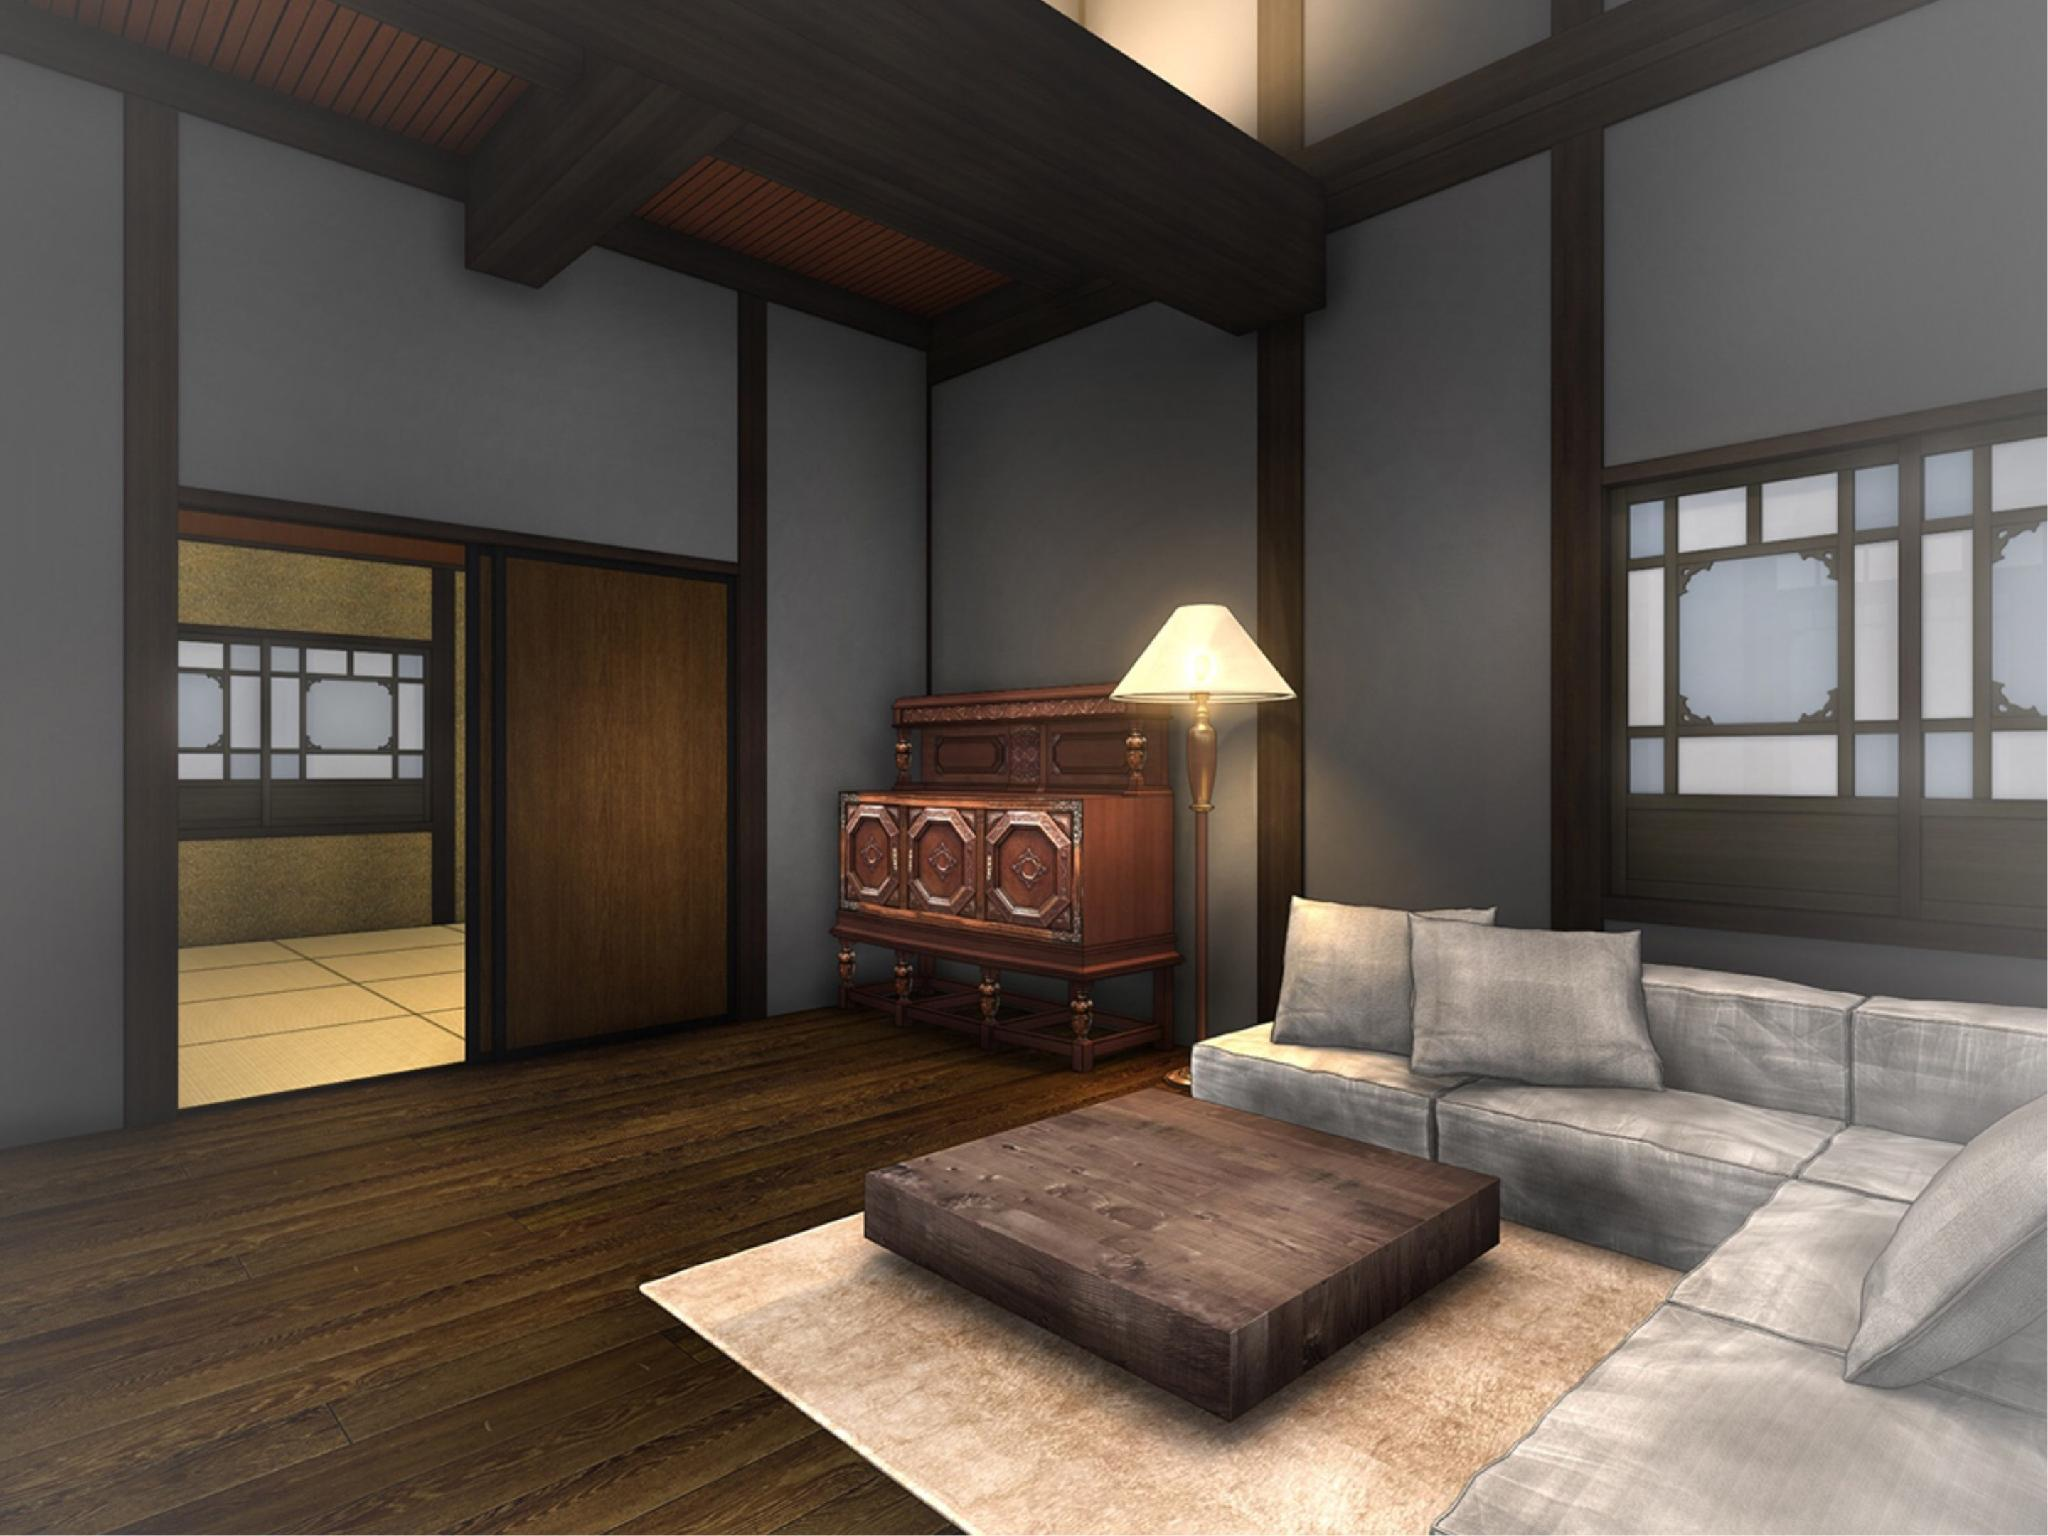 다다미 침대 객실(IKUSEISOU/반노천탕) (Japanese/Western-style Room with Semi Open-air Bath (Ikuseisou Type))